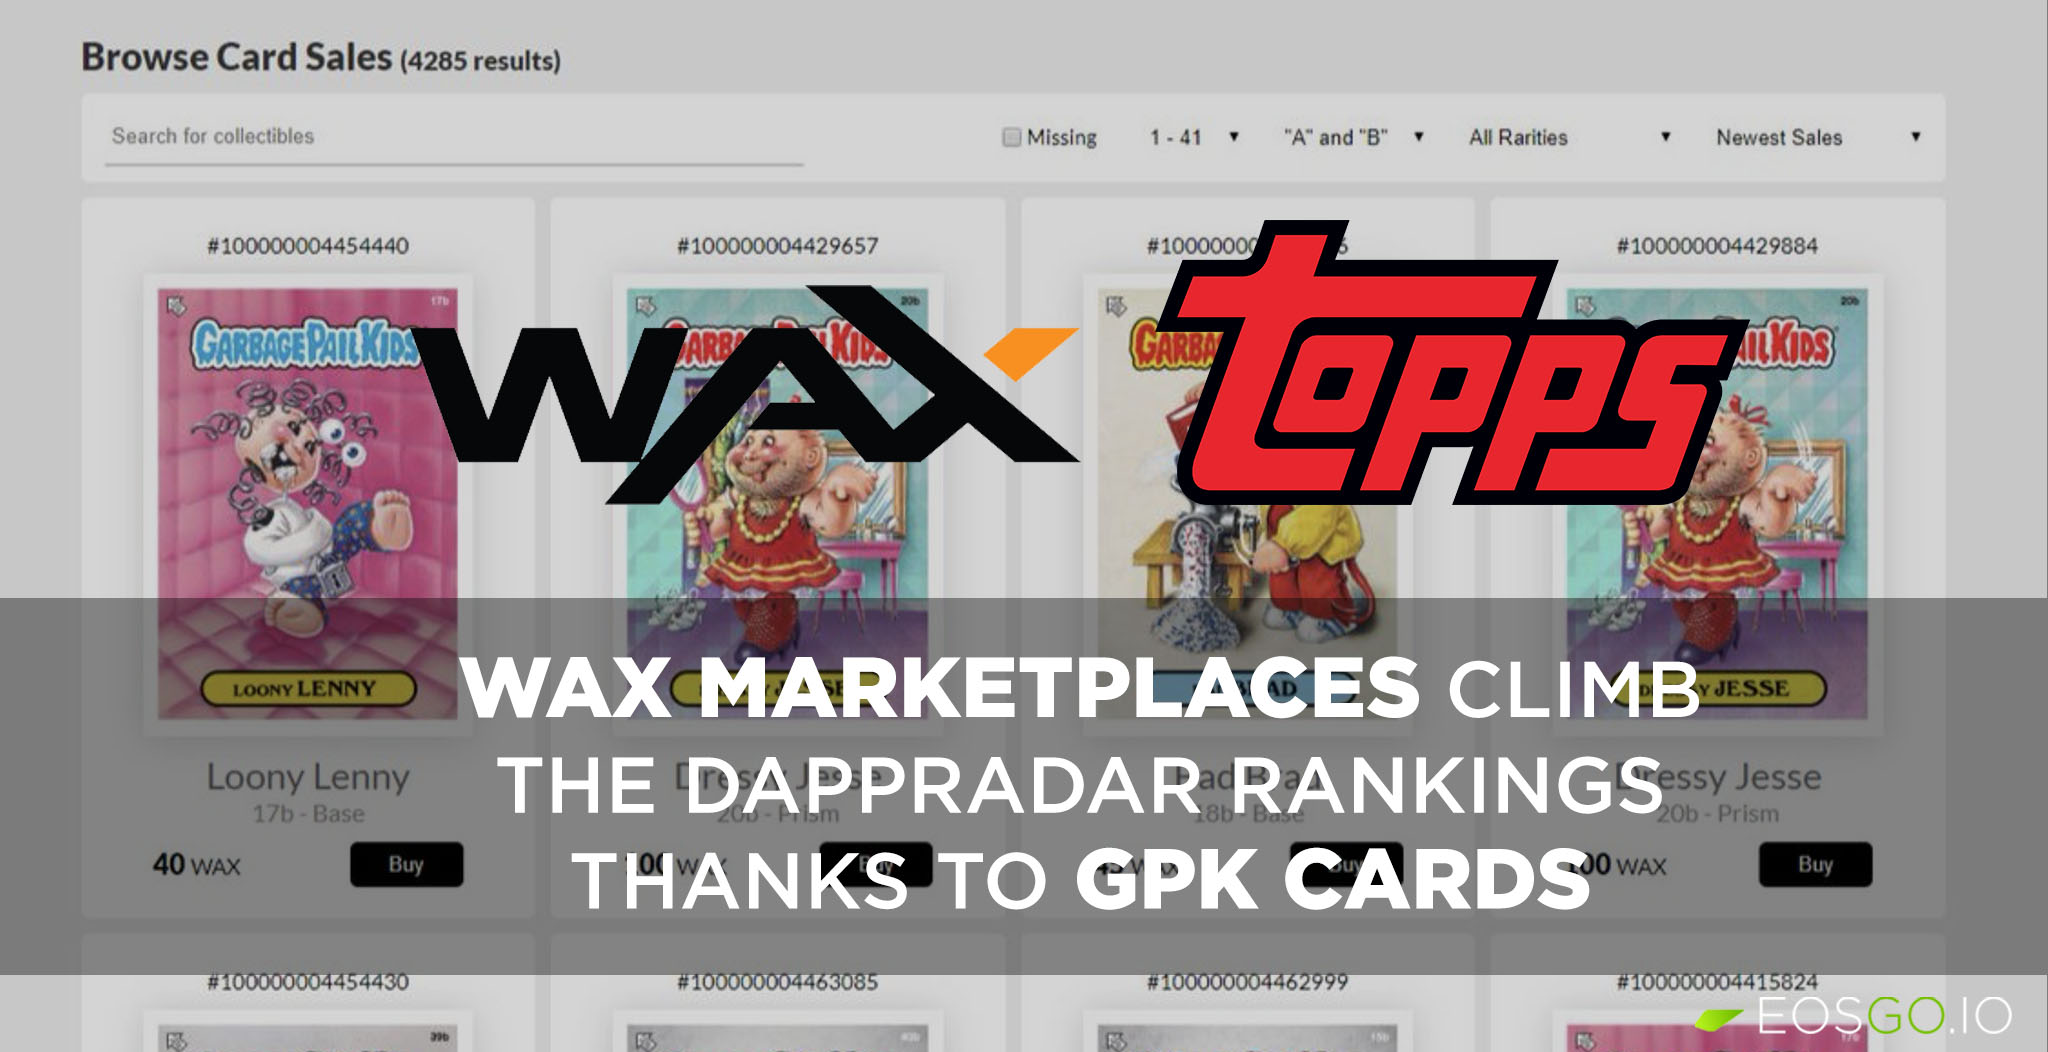 wax-marketplaces-clib-dapp-radar-rankings